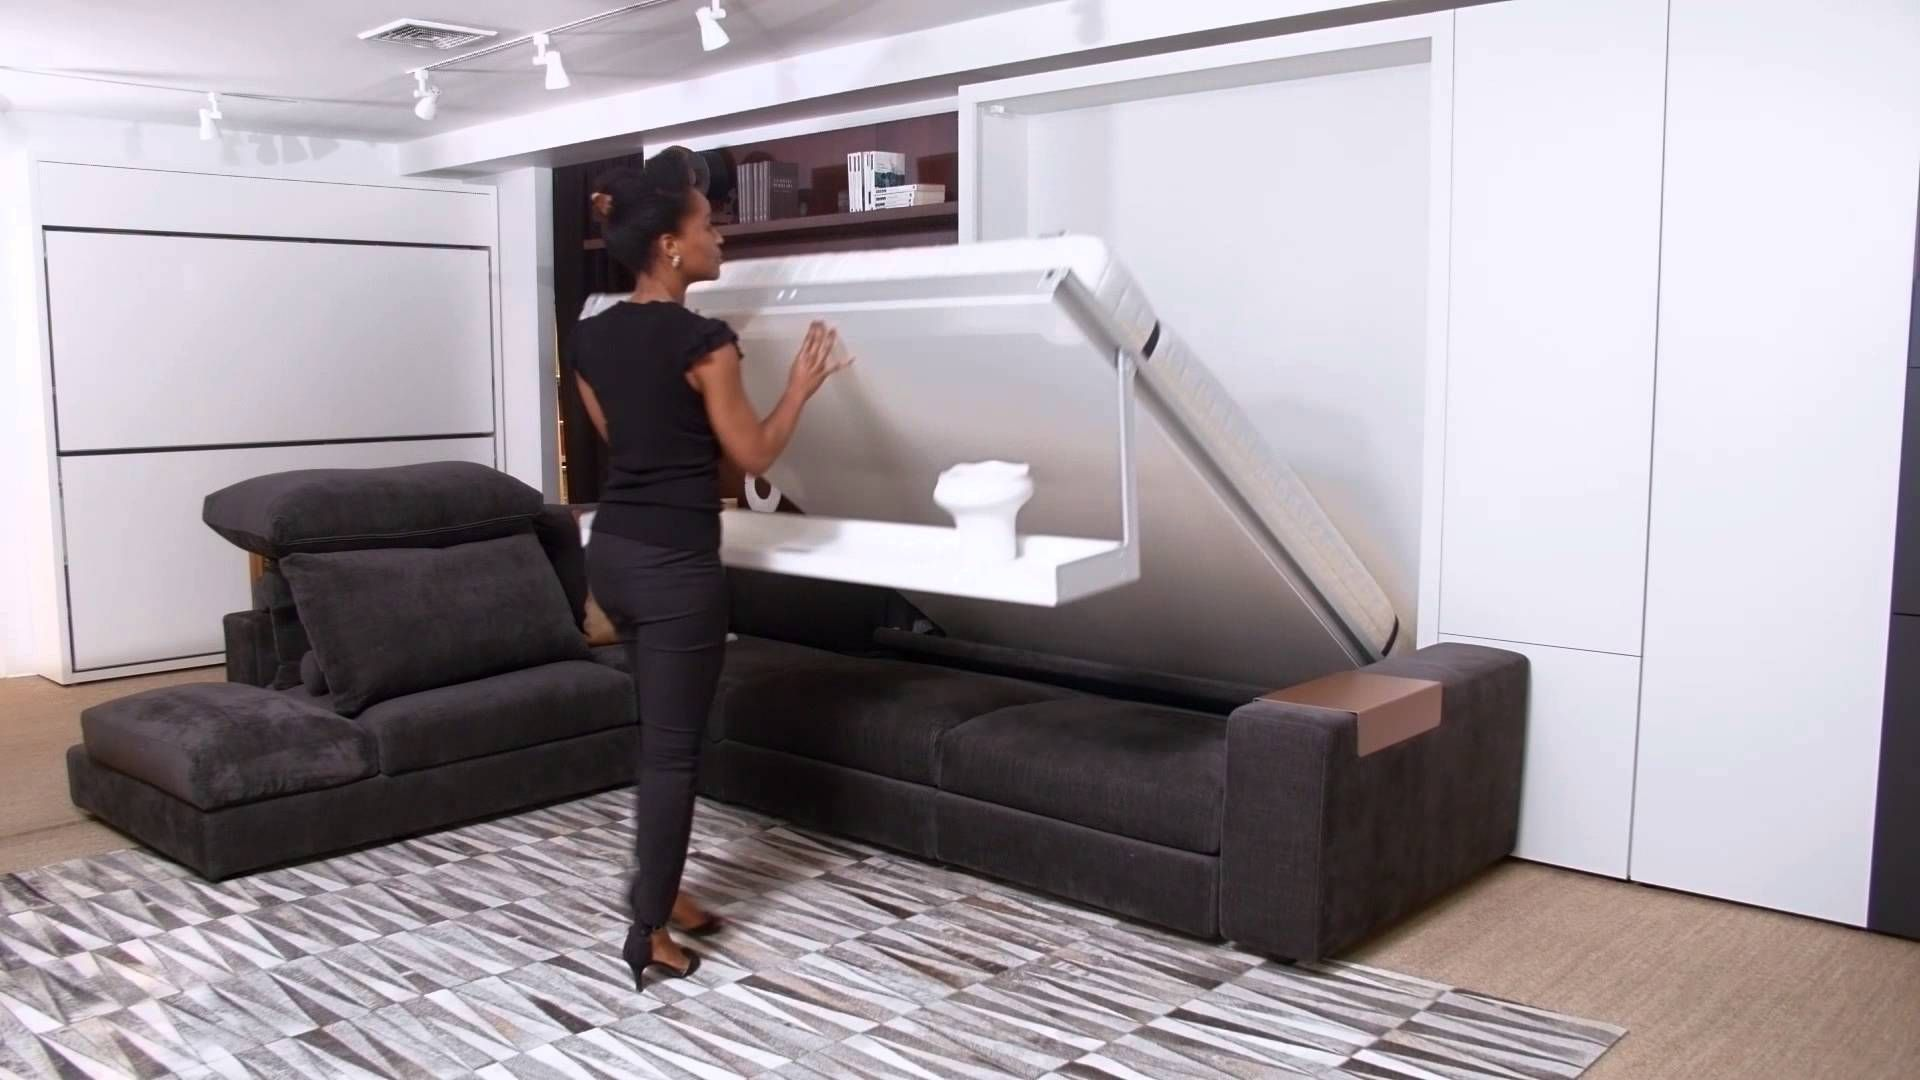 The Tango Sectional is a vertically opening queen size